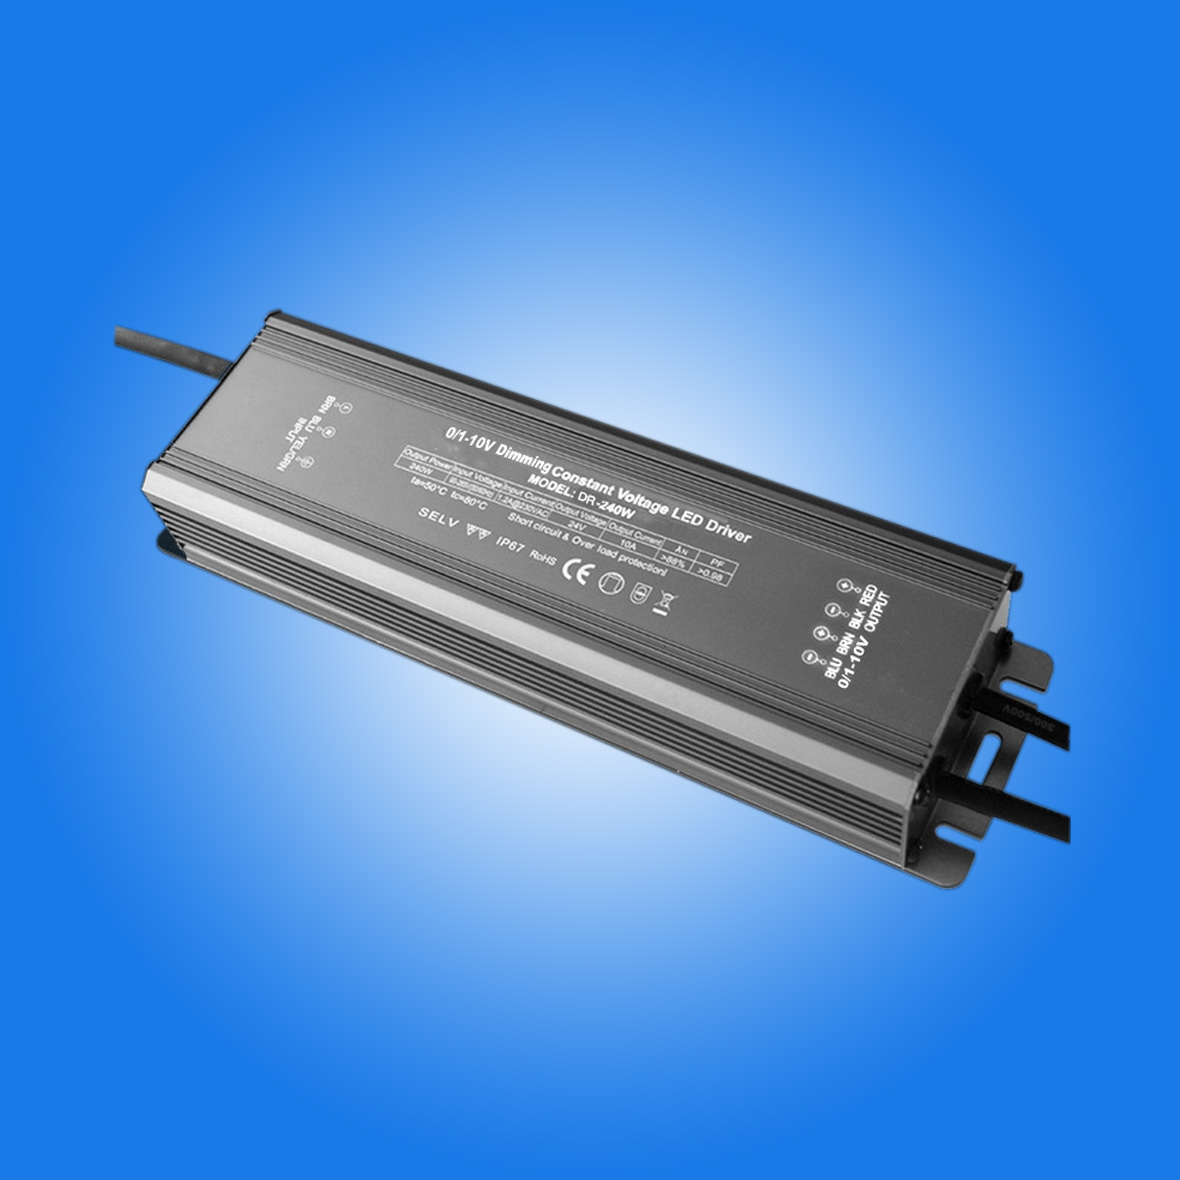 240w dali dimmable led driver